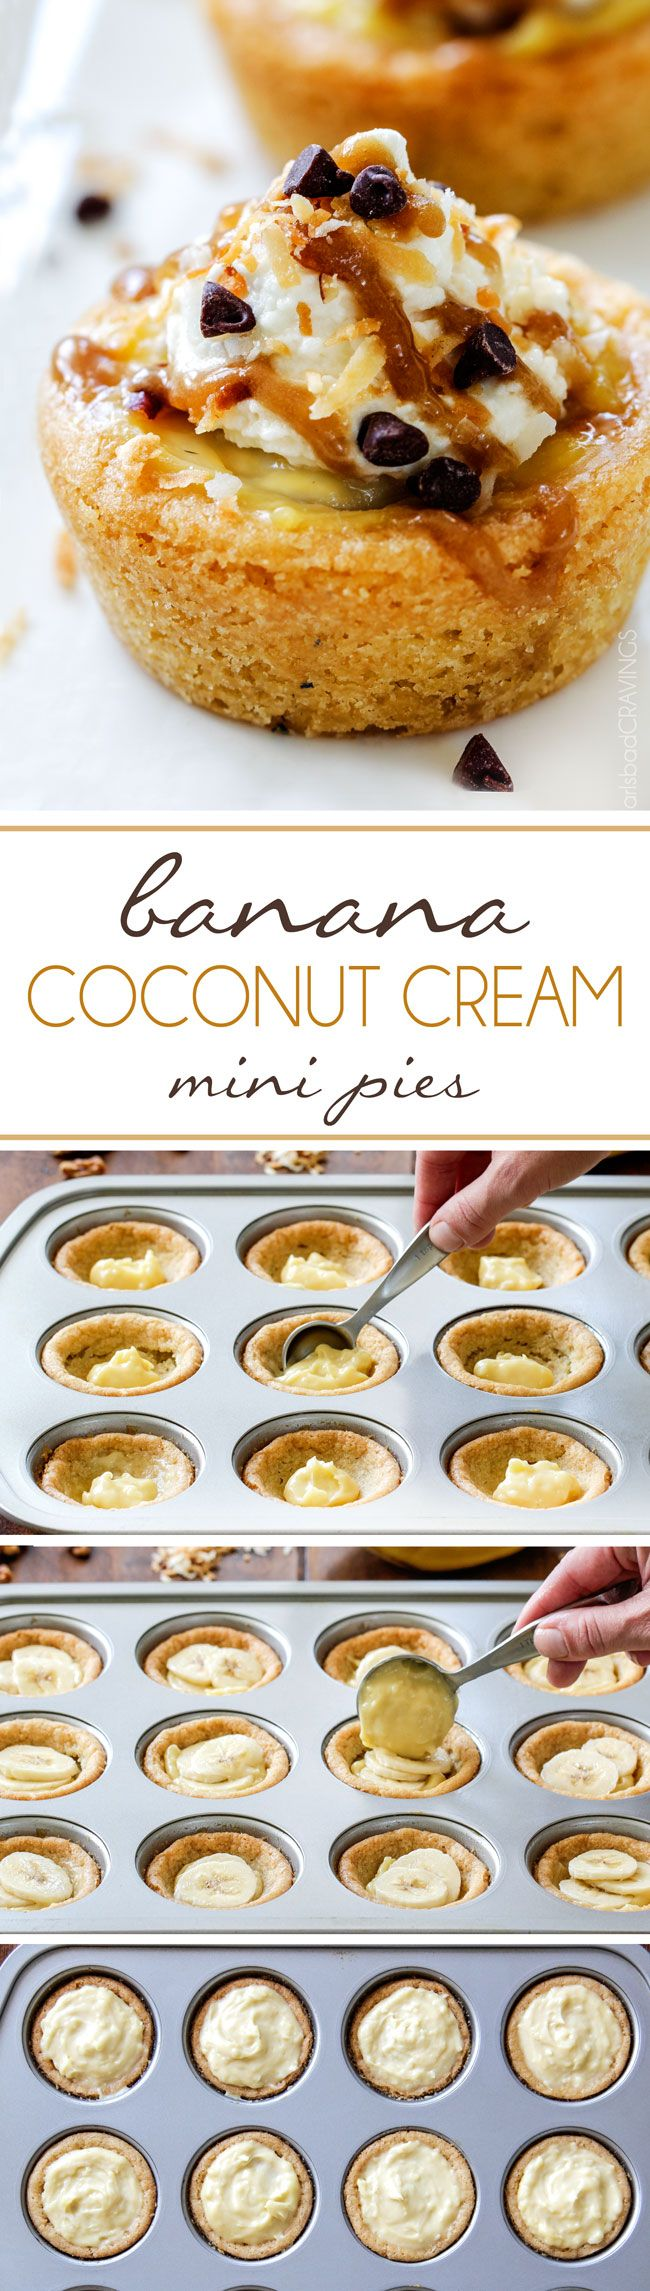 Mini Banana Coconut Cream Pies is the best of both pies in one! Baked in chewy, buttery sugar cookie cups, topped with Coconut Whipped Cream and Drizzled with Coconut Caramel - perfect for holidays! via @carlsbadcraving